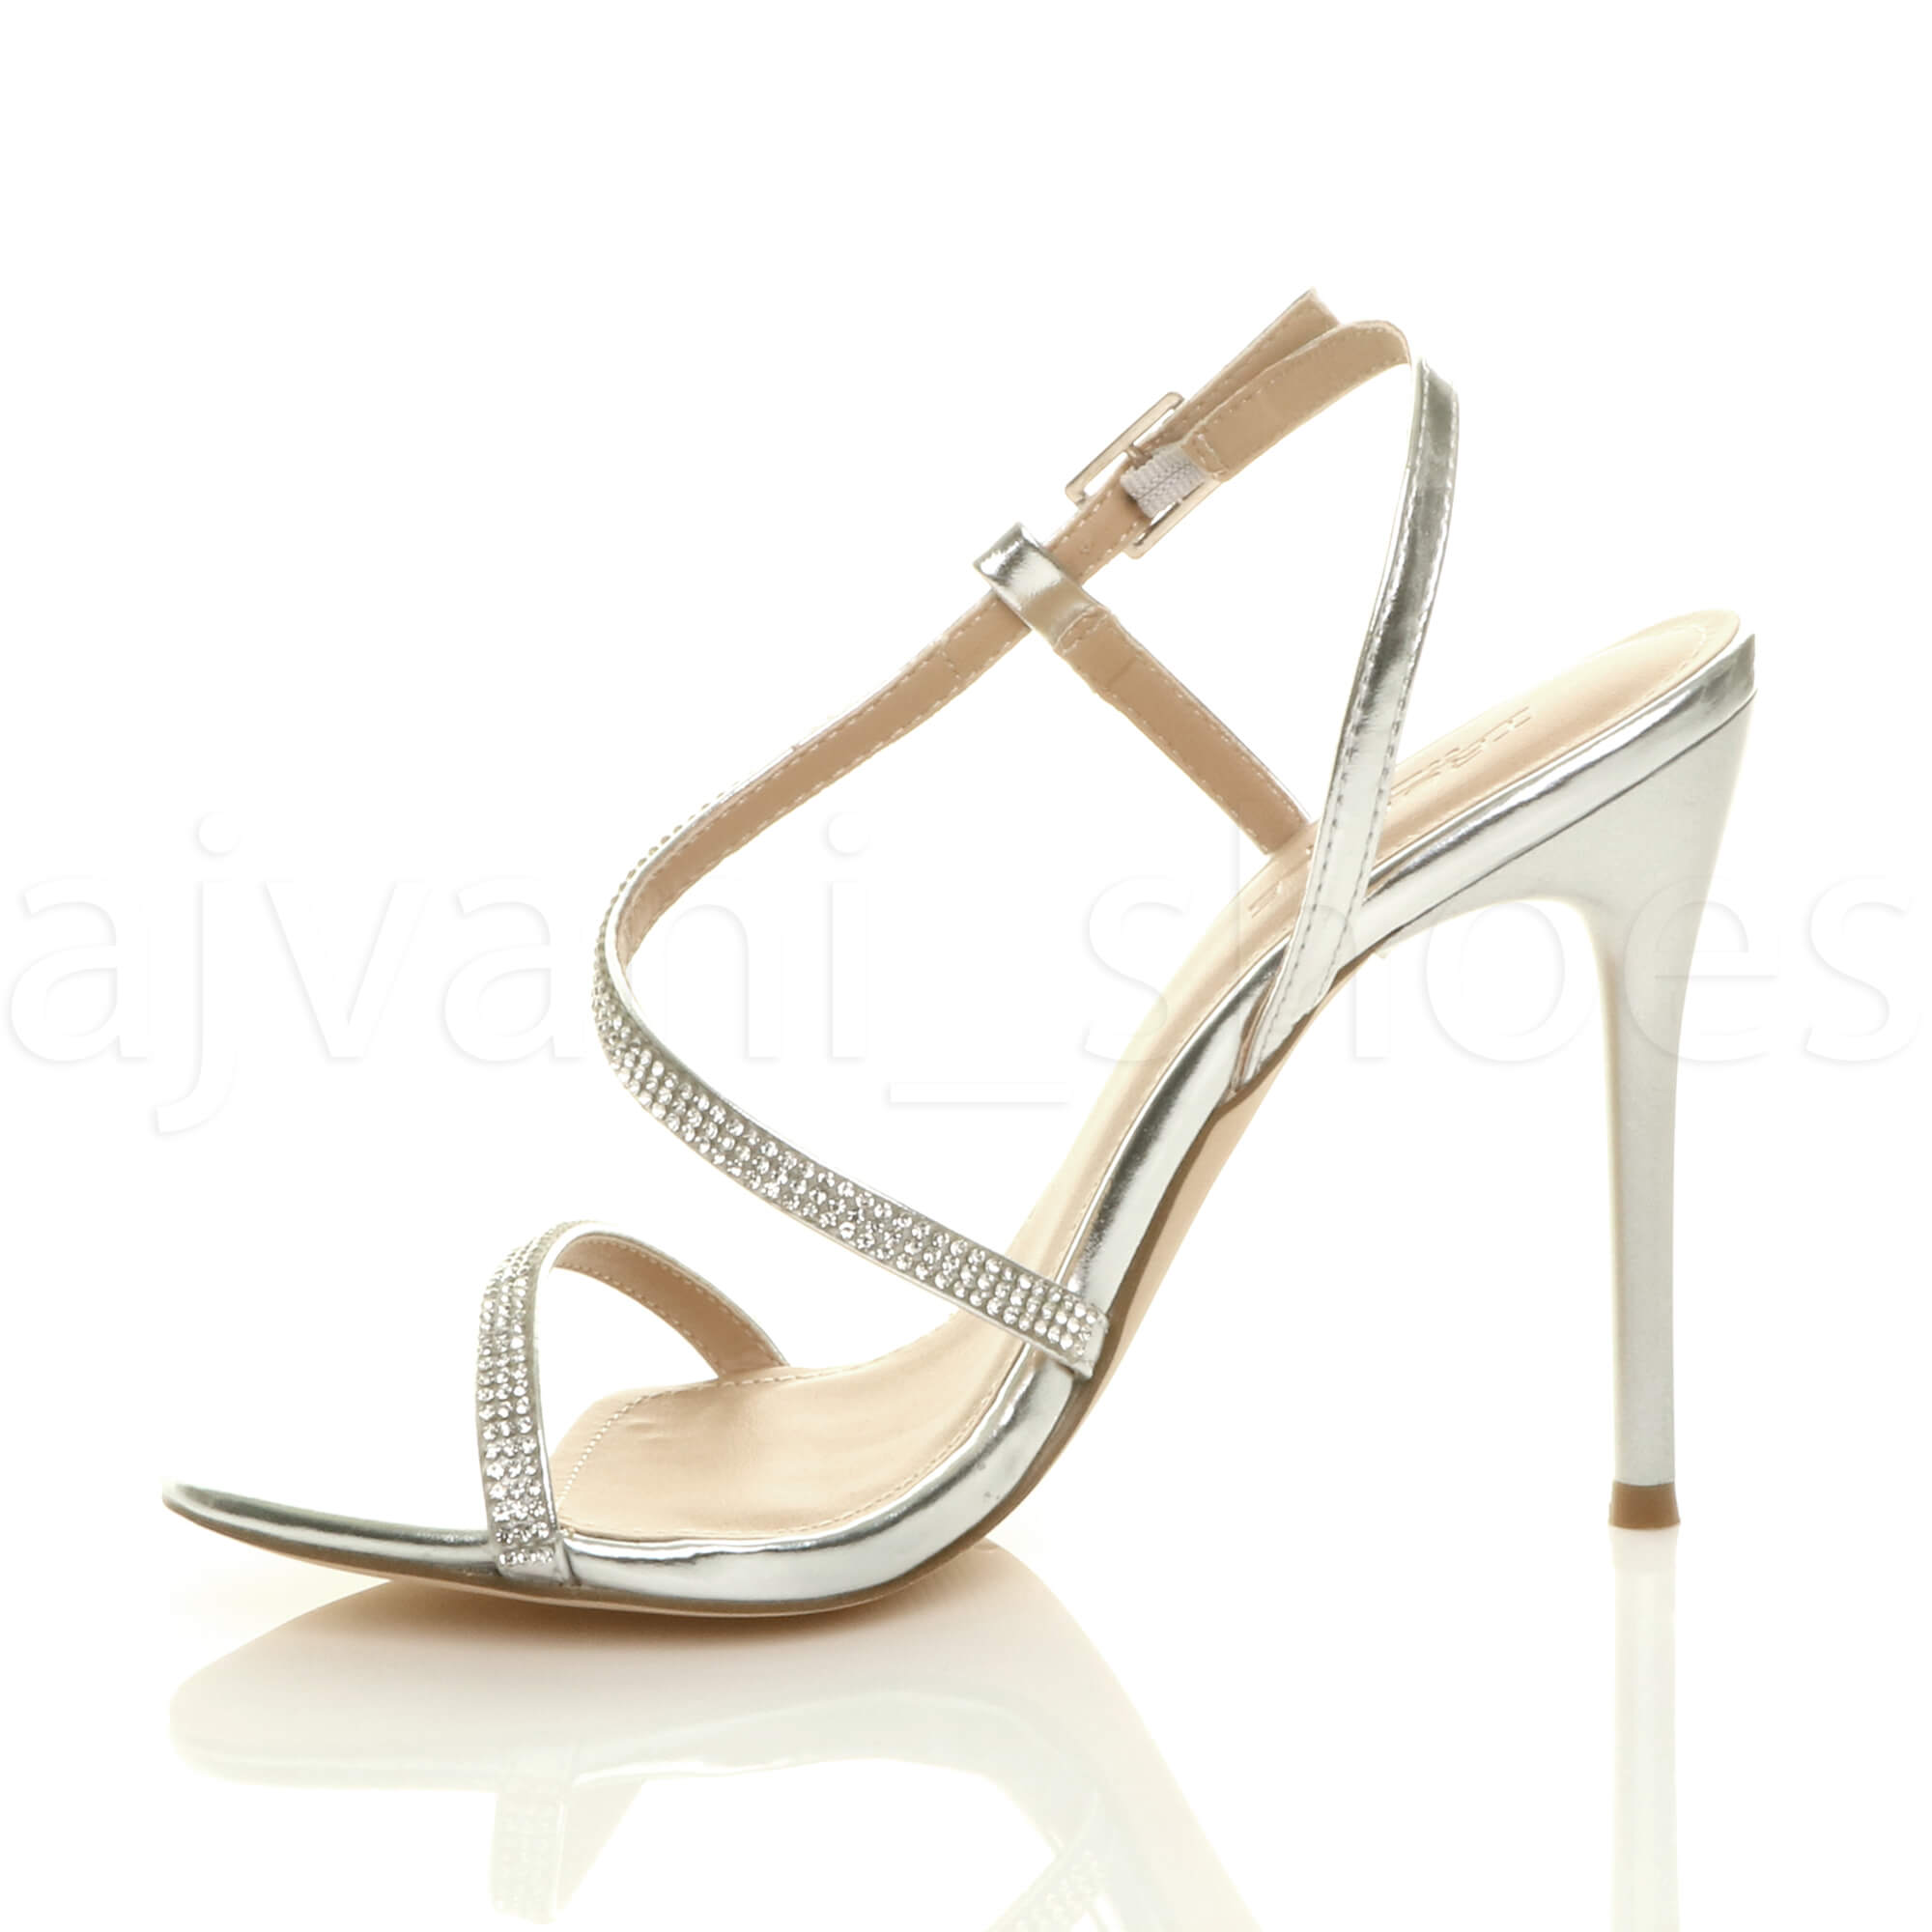 WOMENS-LADIES-HIGH-HEEL-DIAMANTE-BARELY-THERE-STRAPPY-EVENING-SANDALS-SIZE thumbnail 20